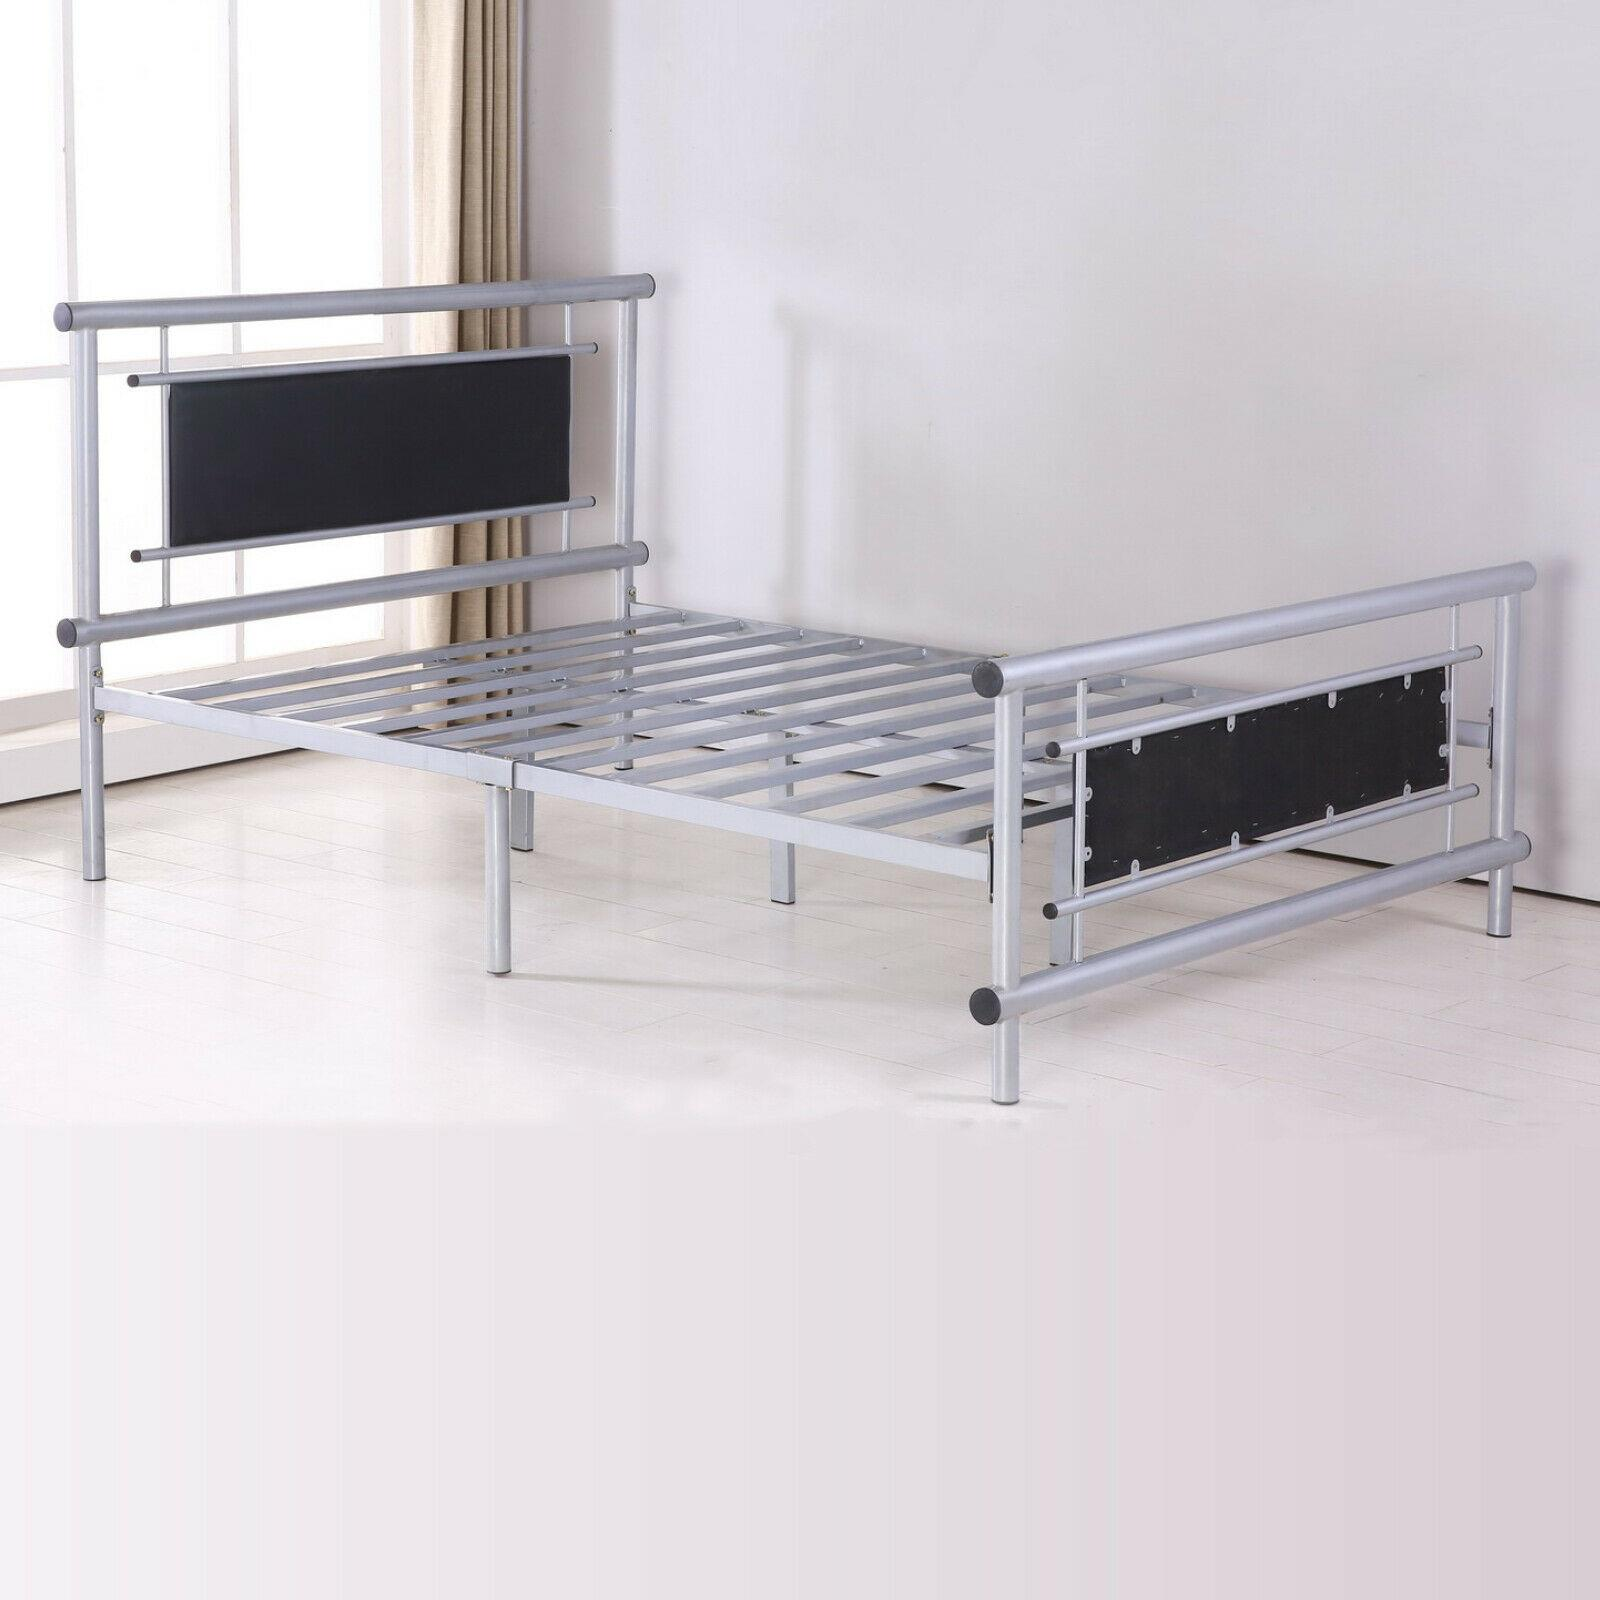 Luxury Metal Bed Frame Single King Size Double Beds 3 4FT ...